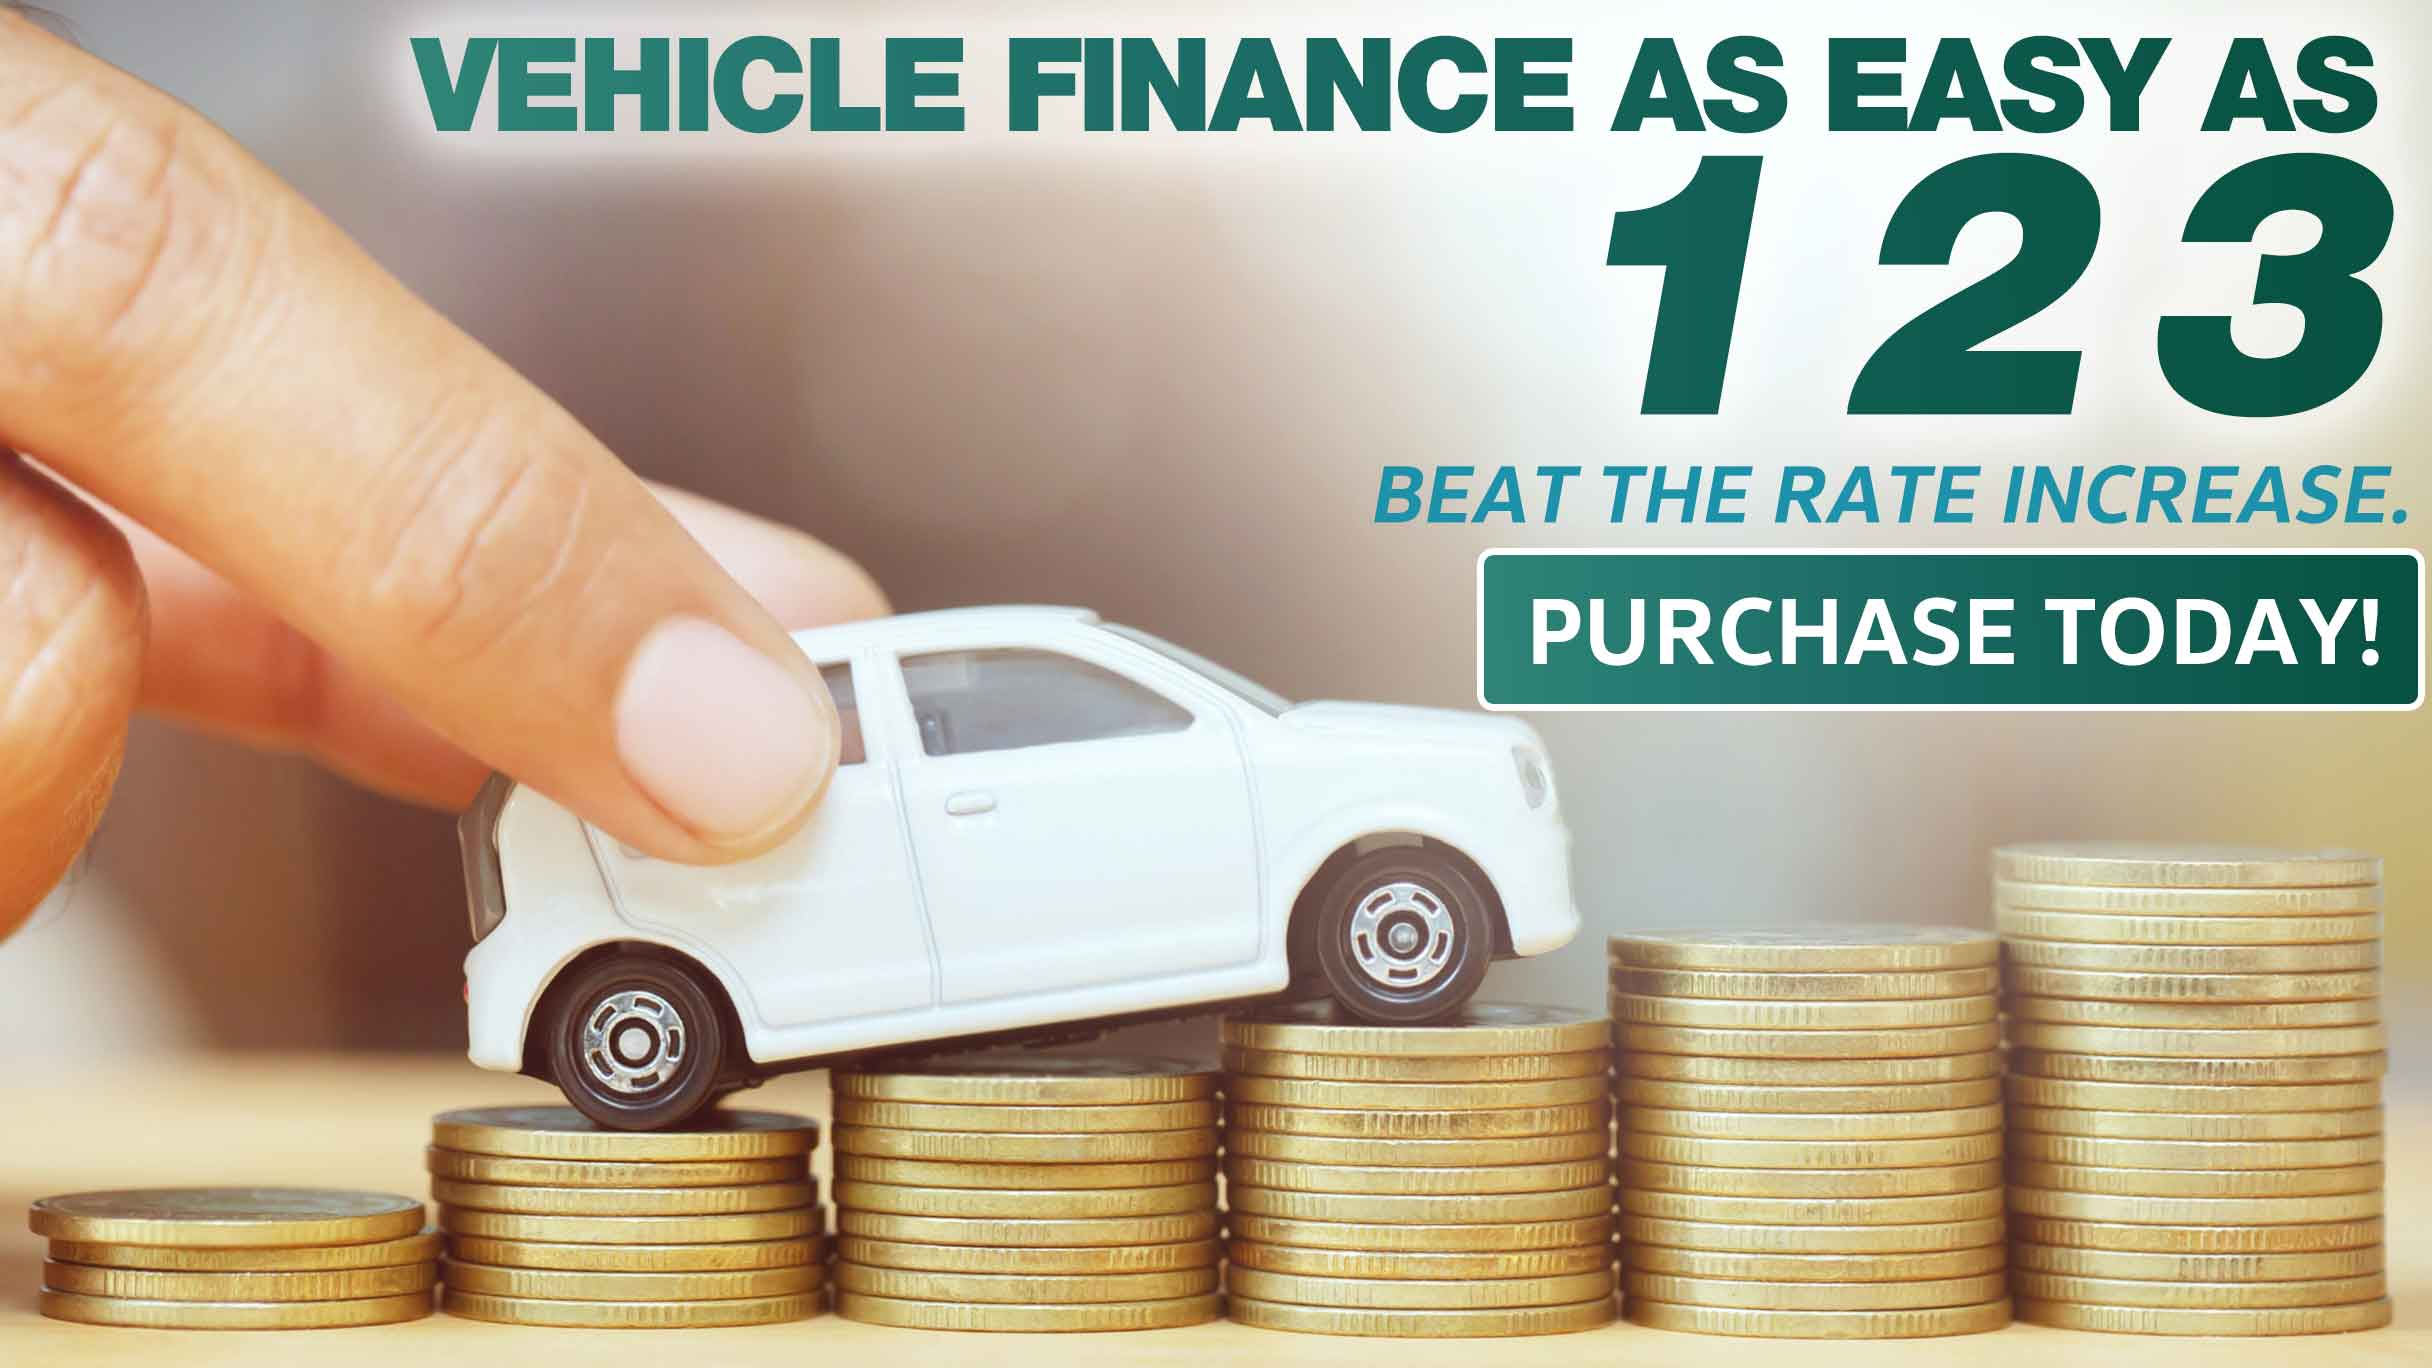 Barons PMB vehicle finance offer